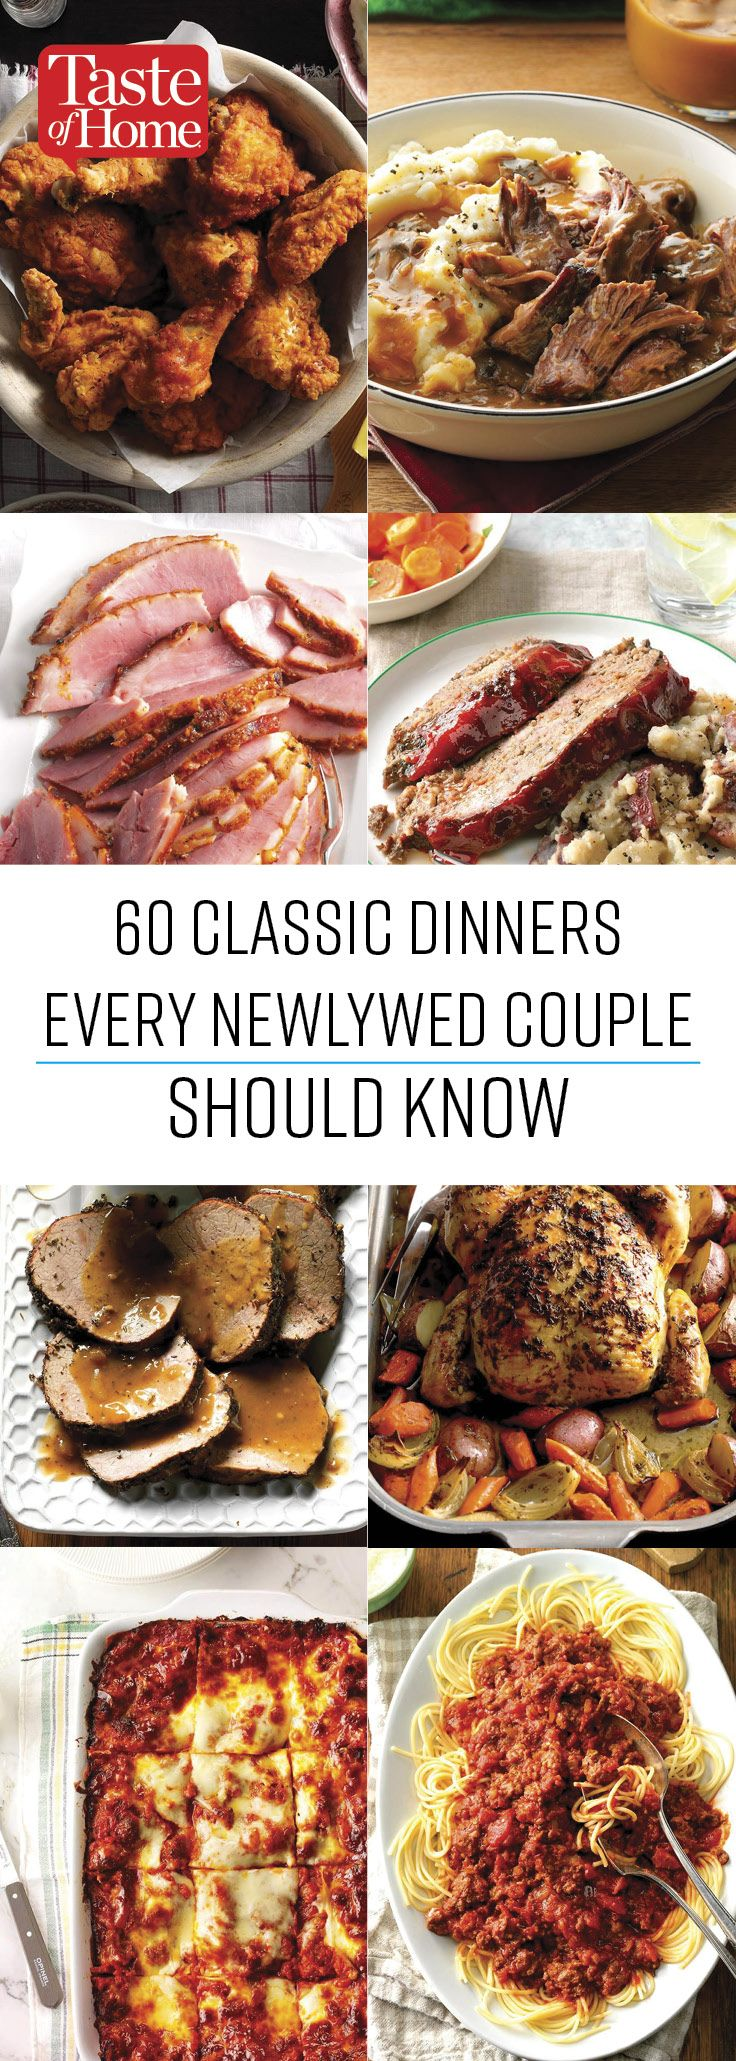 60 classic dinners every newlywed couple should know